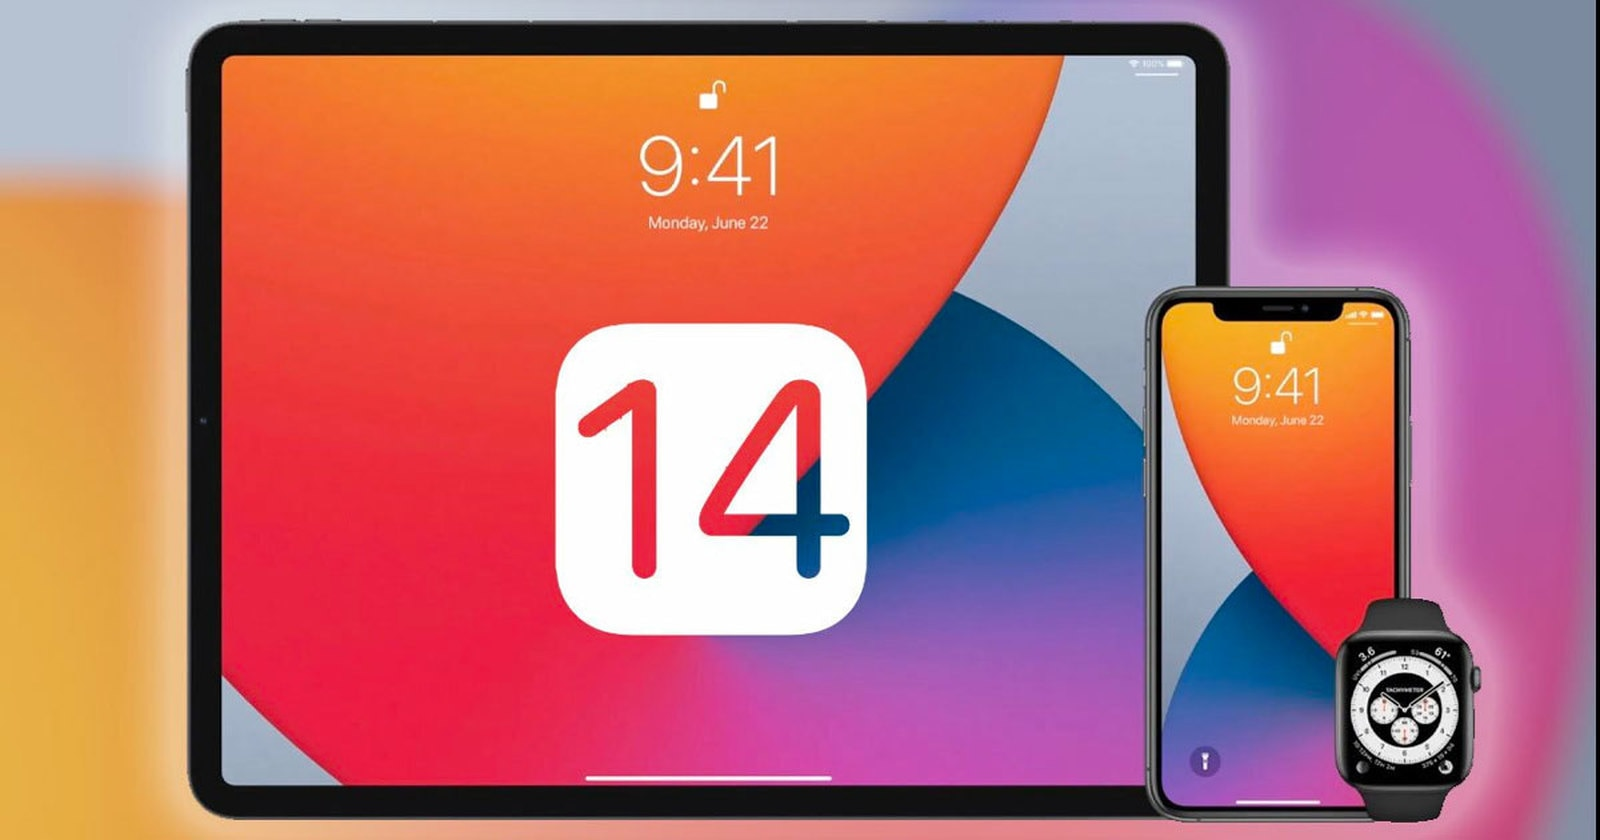 Finalmente iOS 14: disponibile il nuovo software per i device elettronici portatili di Apple